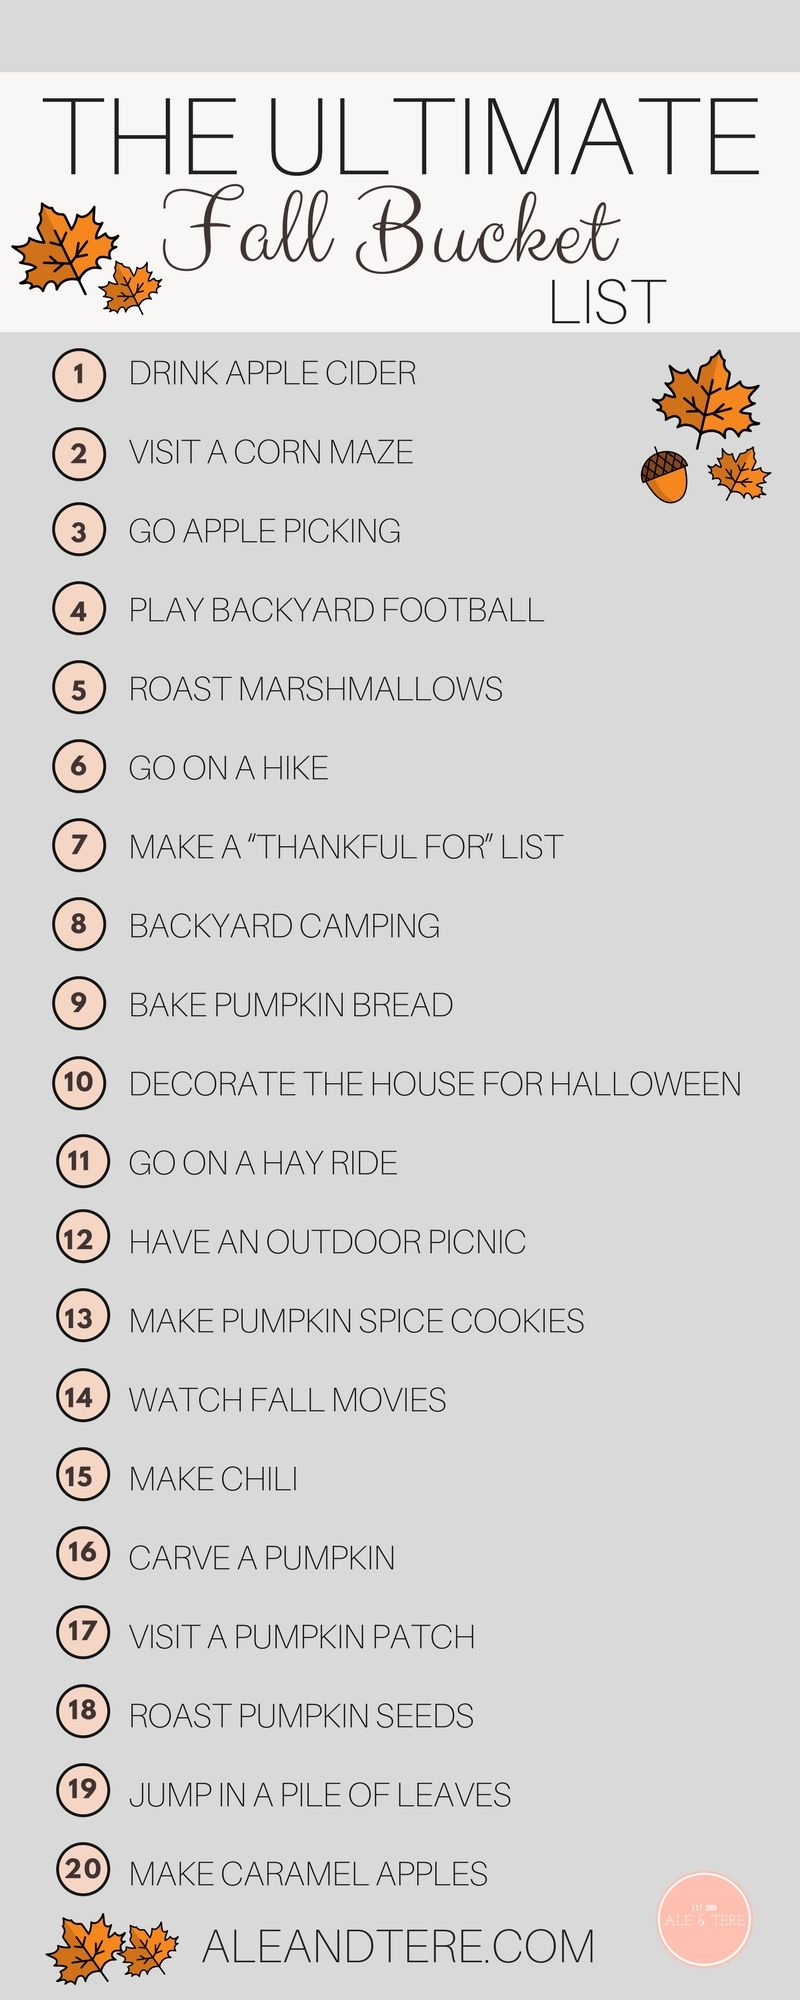 FALL BUCKET LIST + A FREE PRINTABLE #fallseason